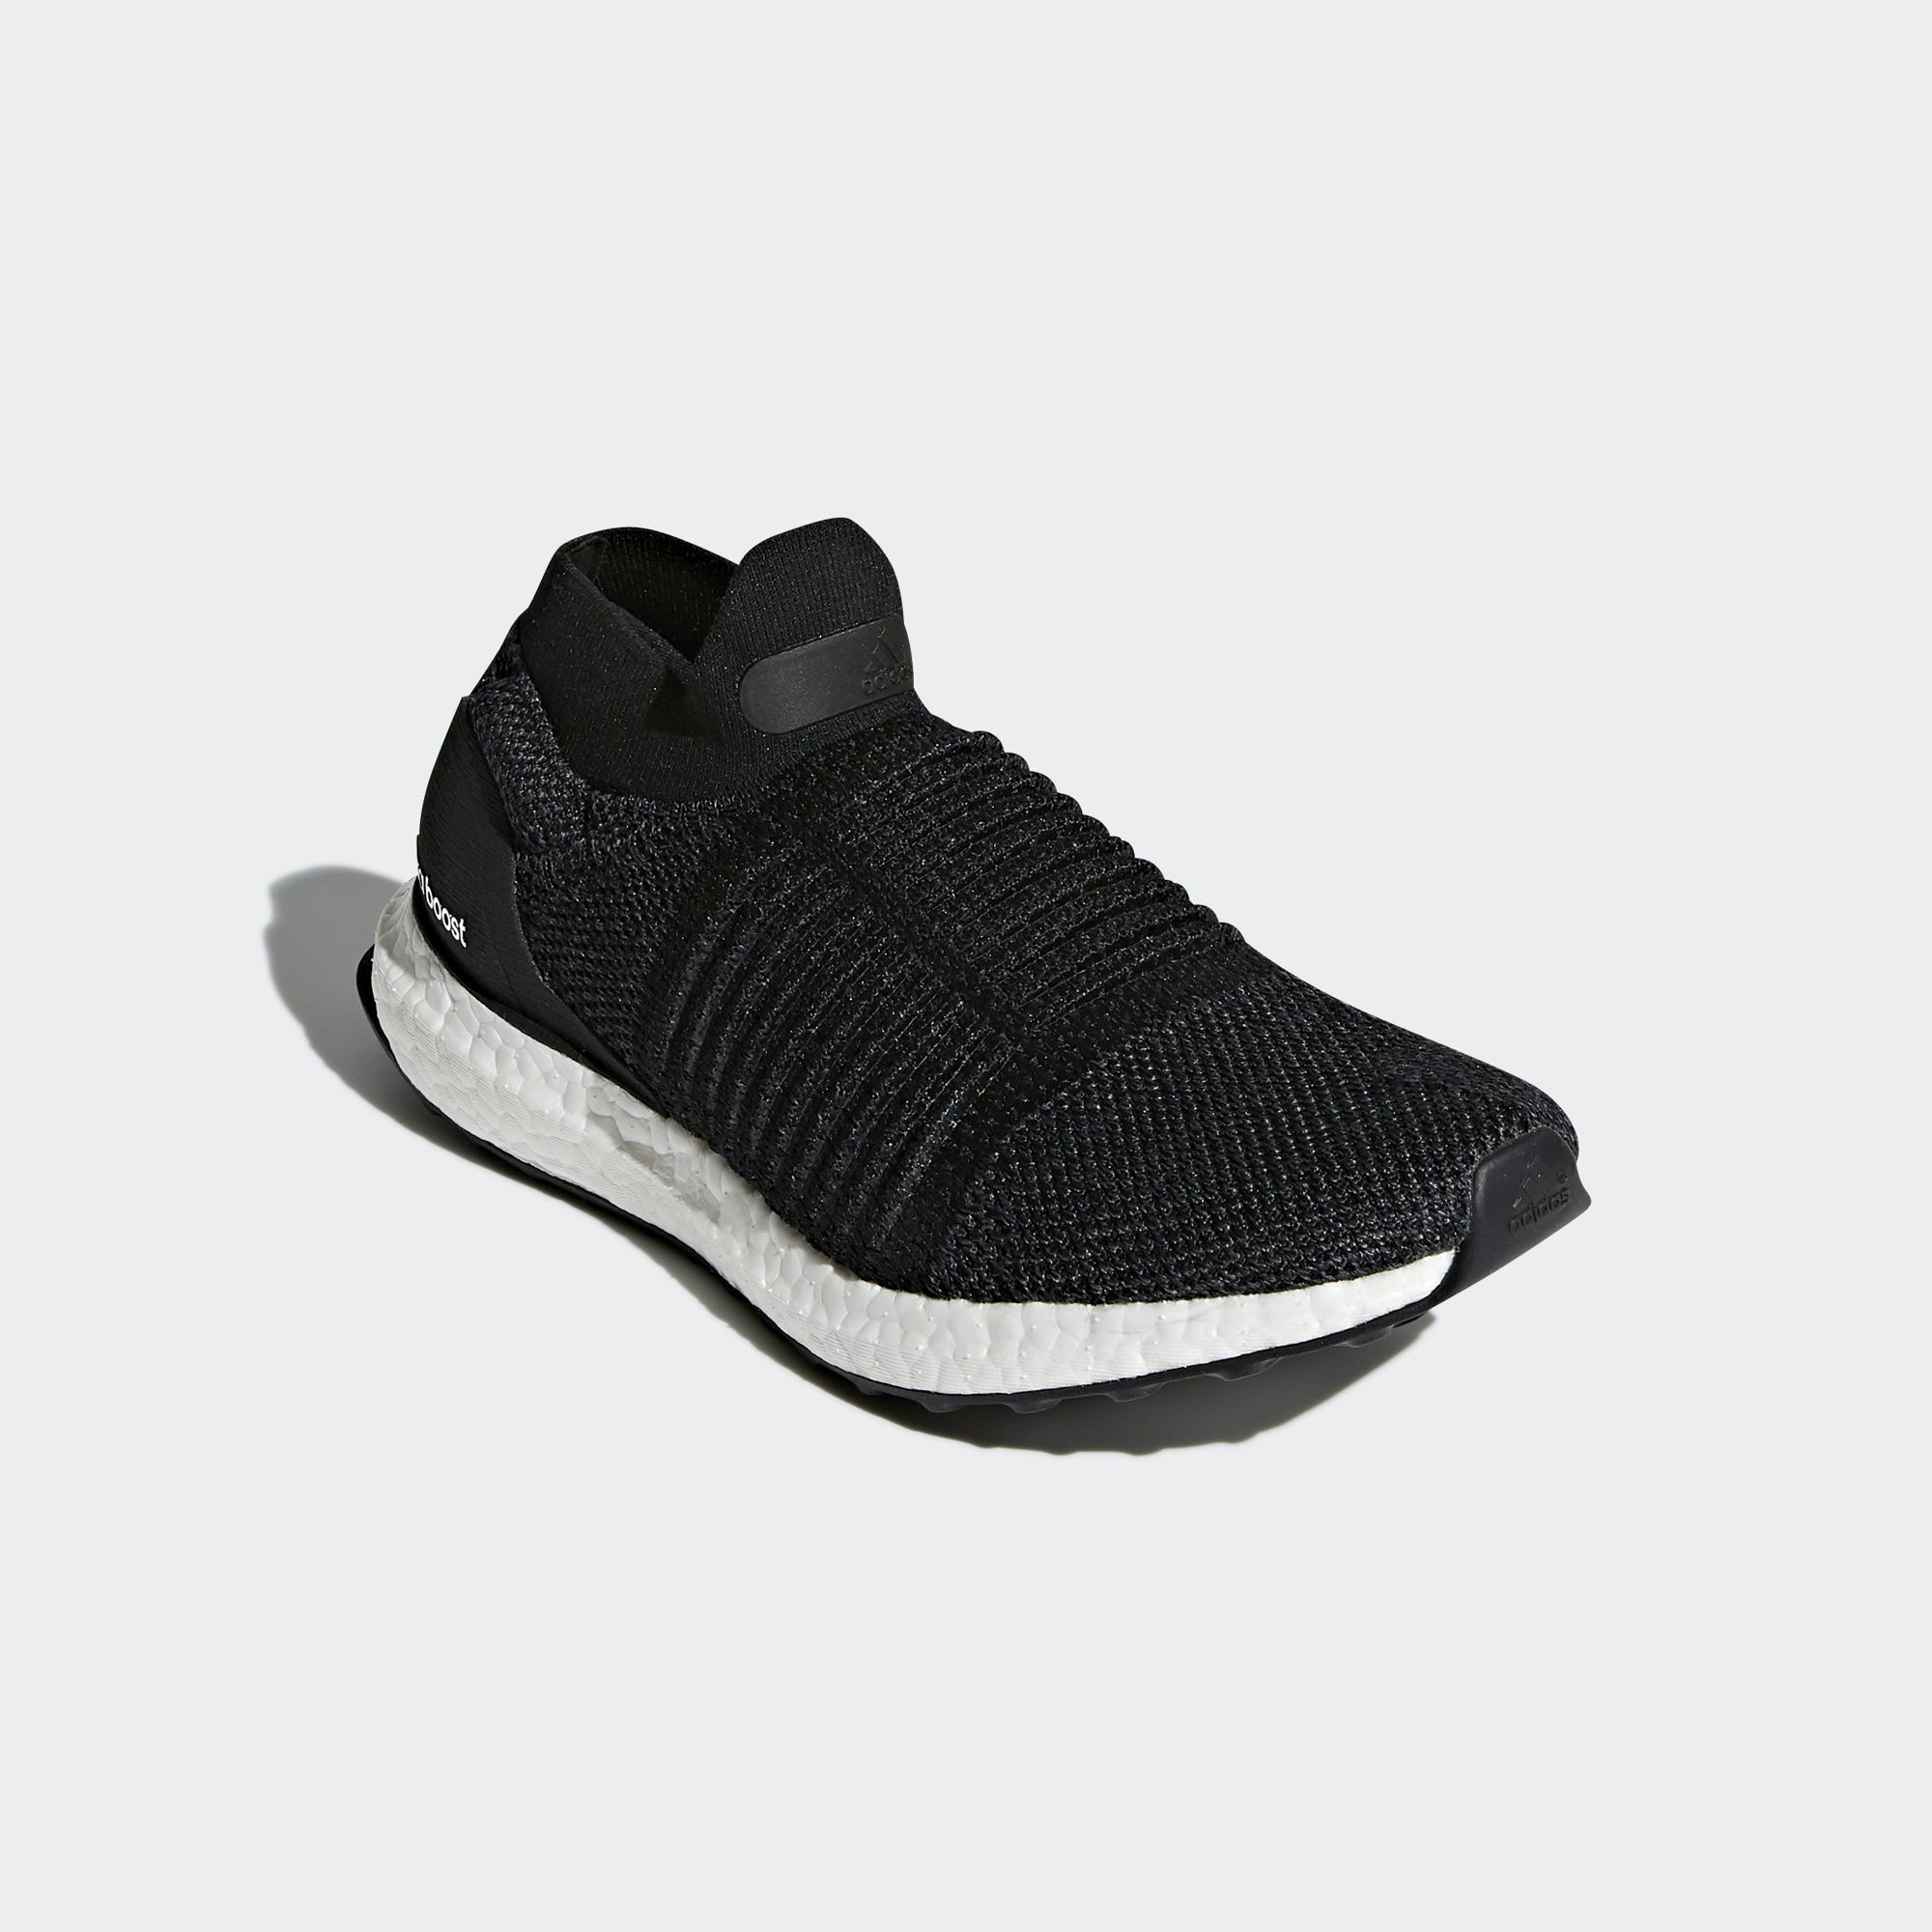 online retailer 73f8d 855d9 adidas Ultraboost Laceless Shoes - Black   adidas US